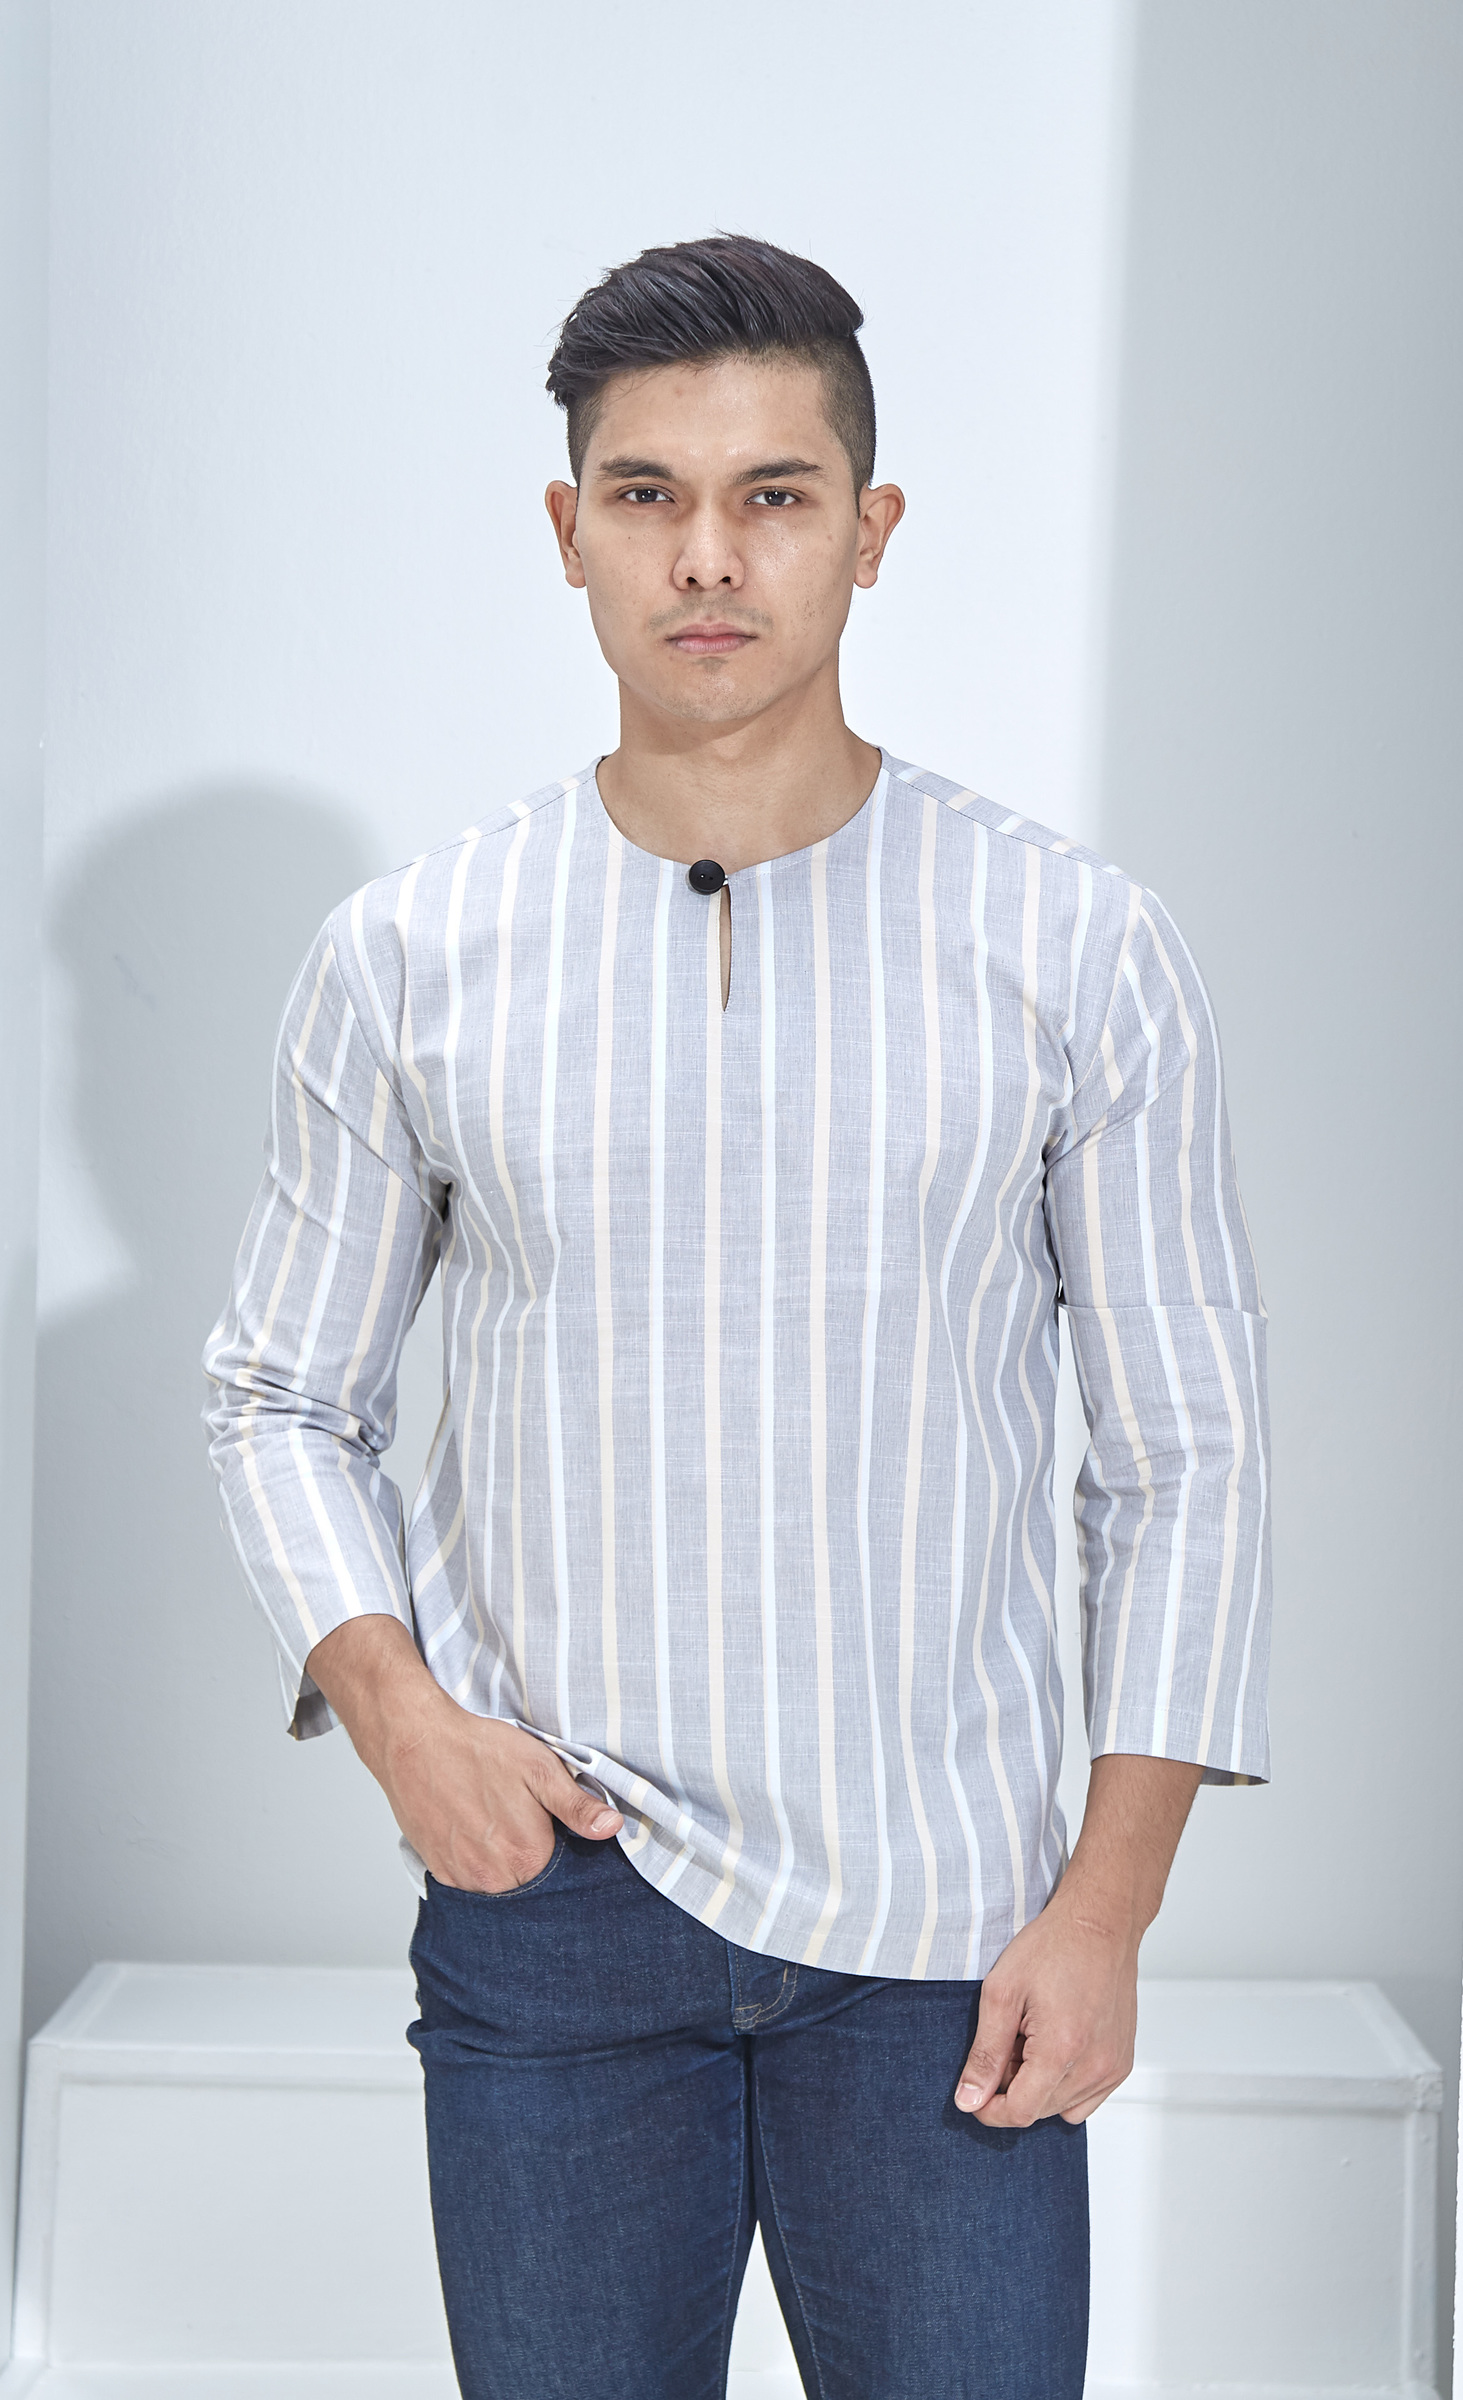 Top Stripe Grey 1.jpg